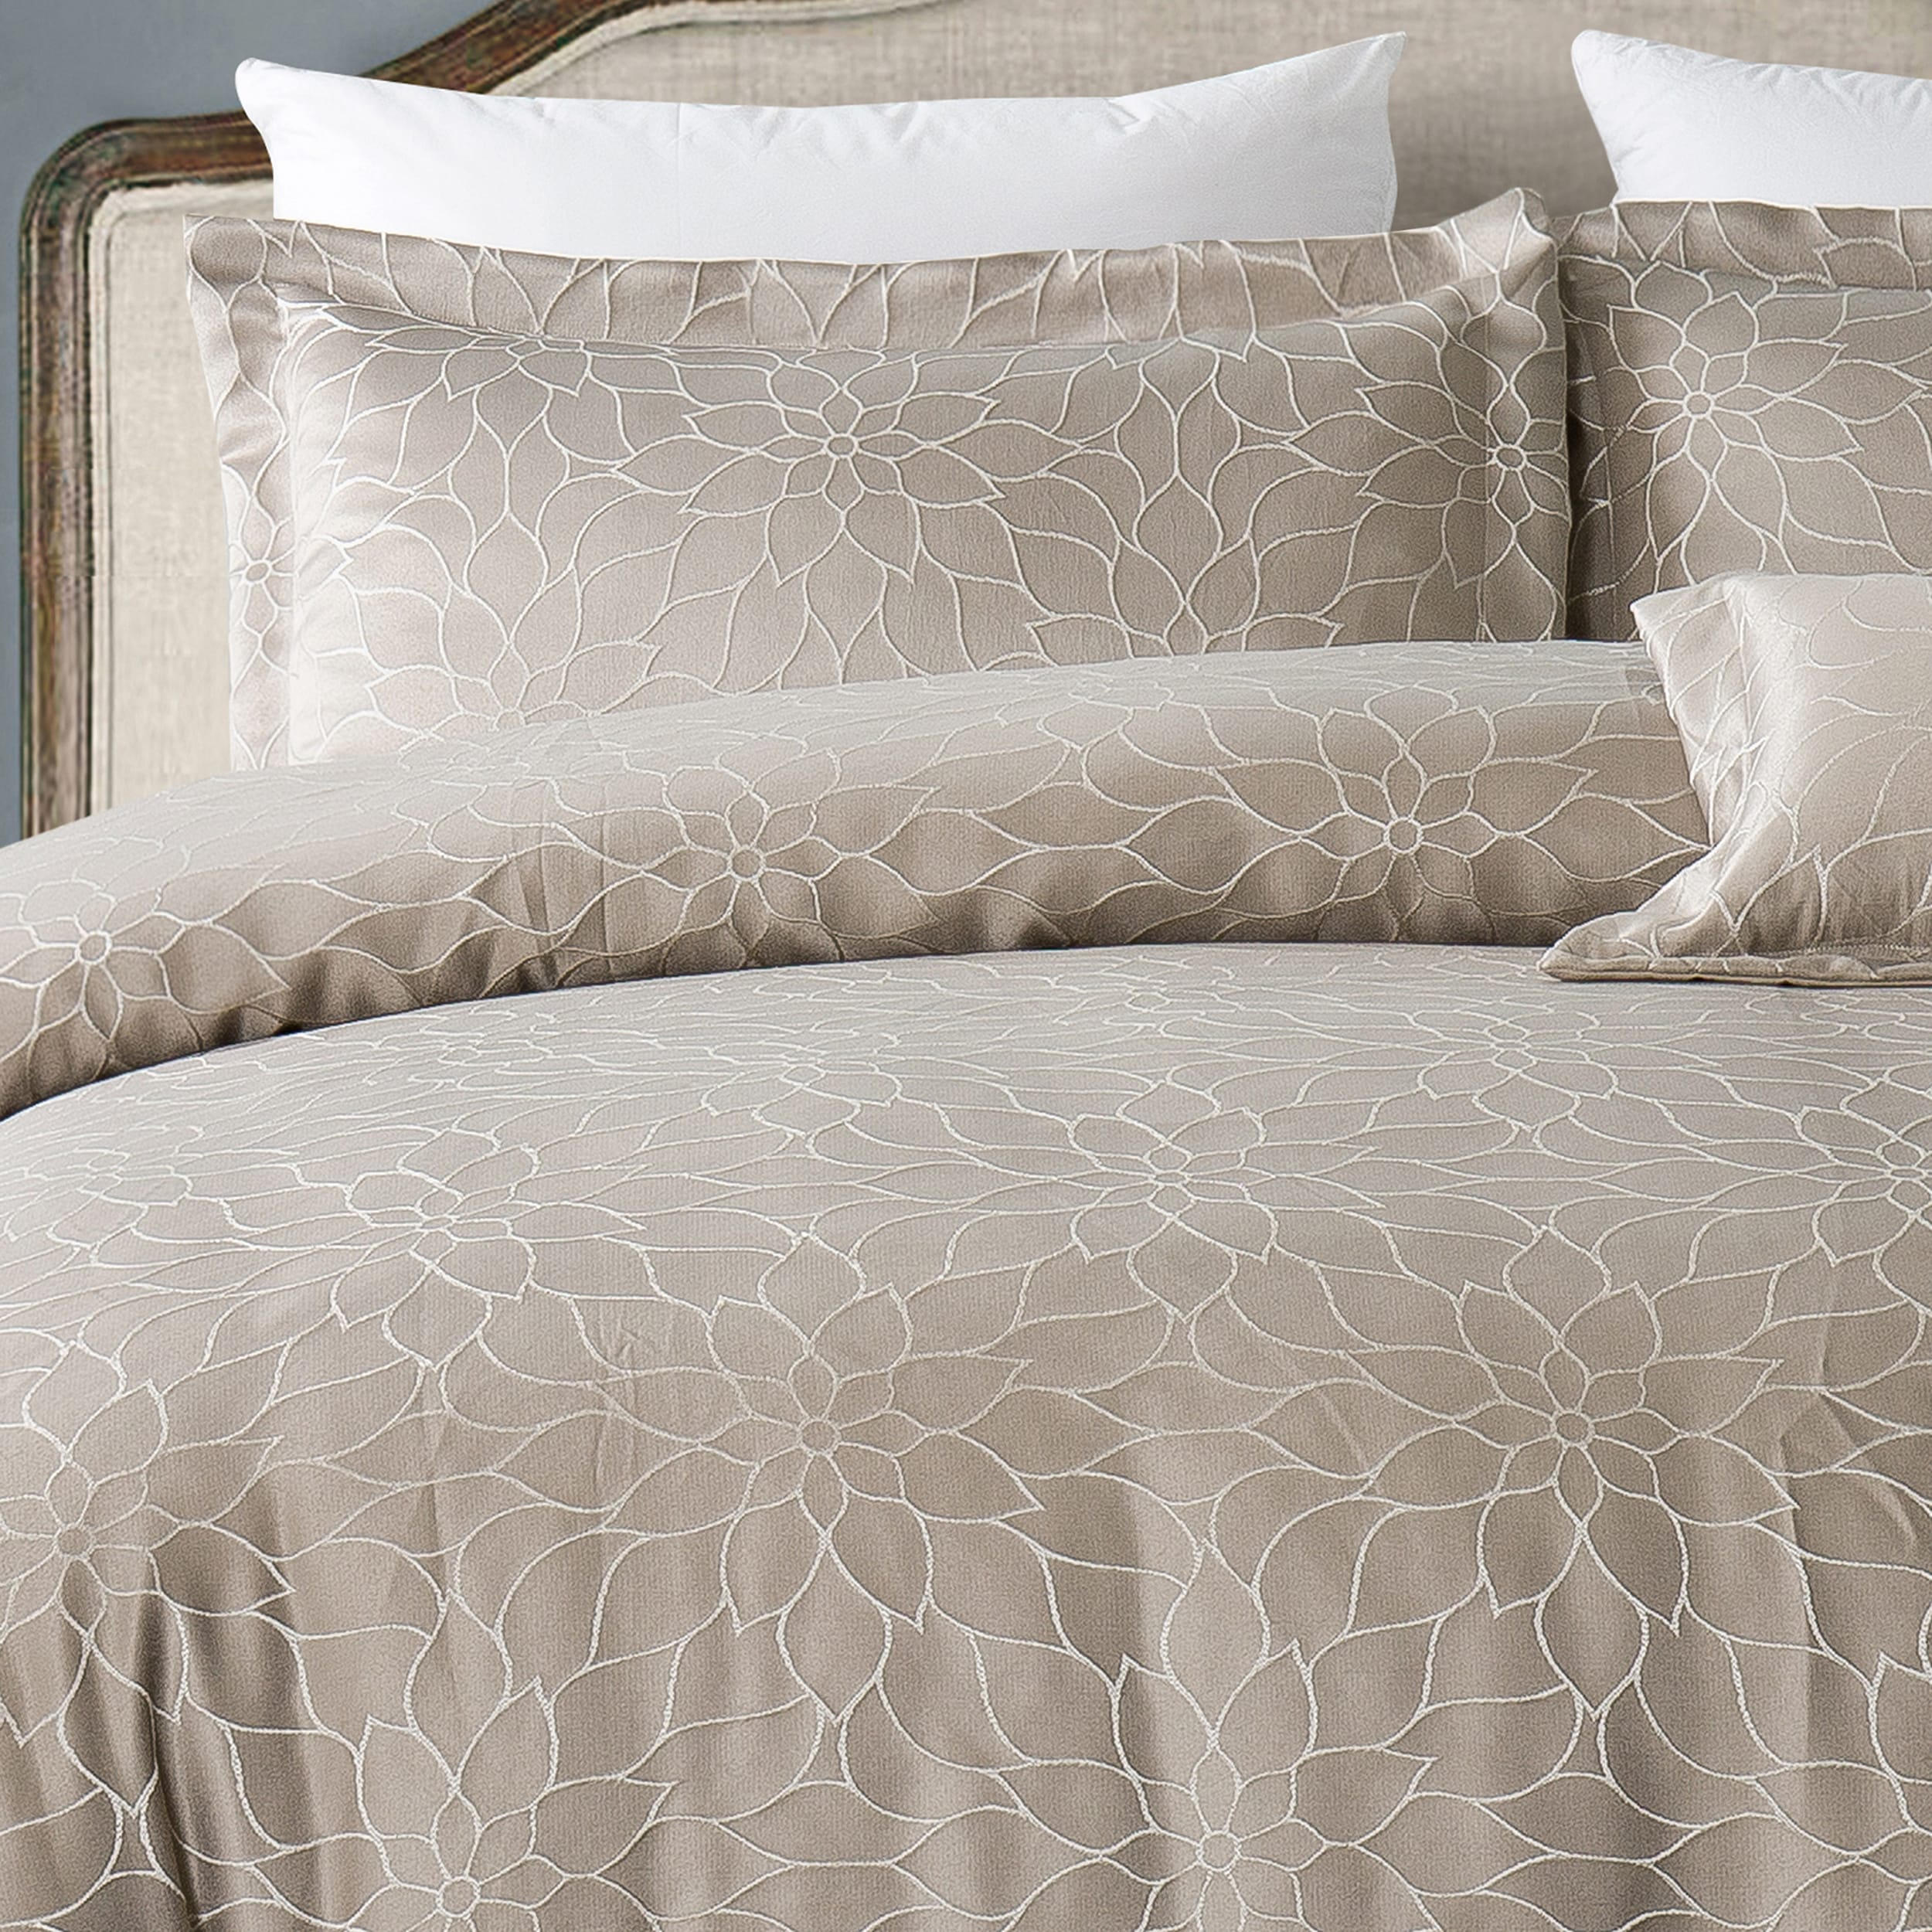 beddingsuperstore set sage comforter in new com york by queen zoom hotel j monticello category